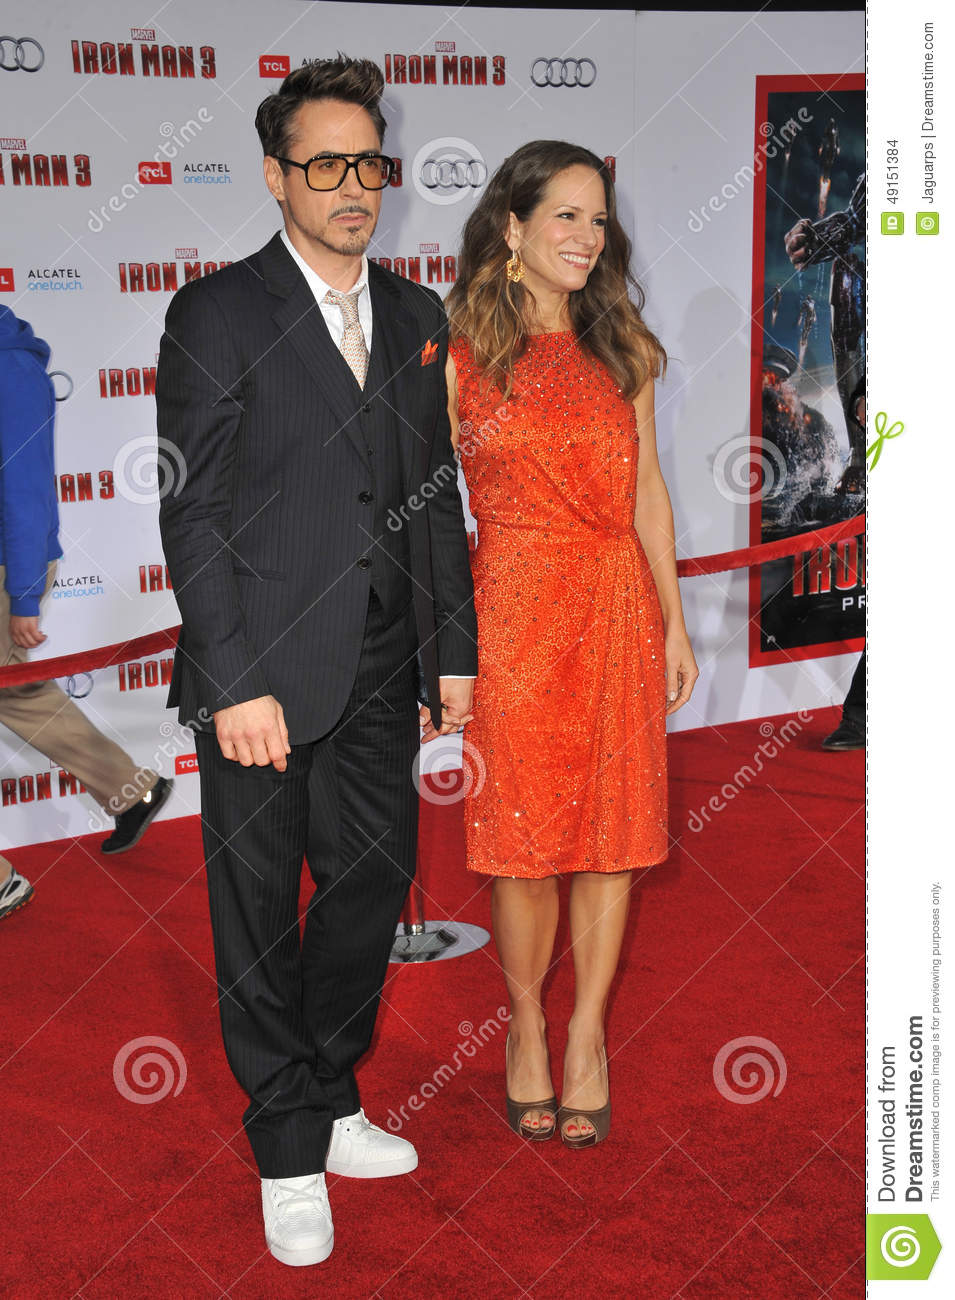 susan downey instagram